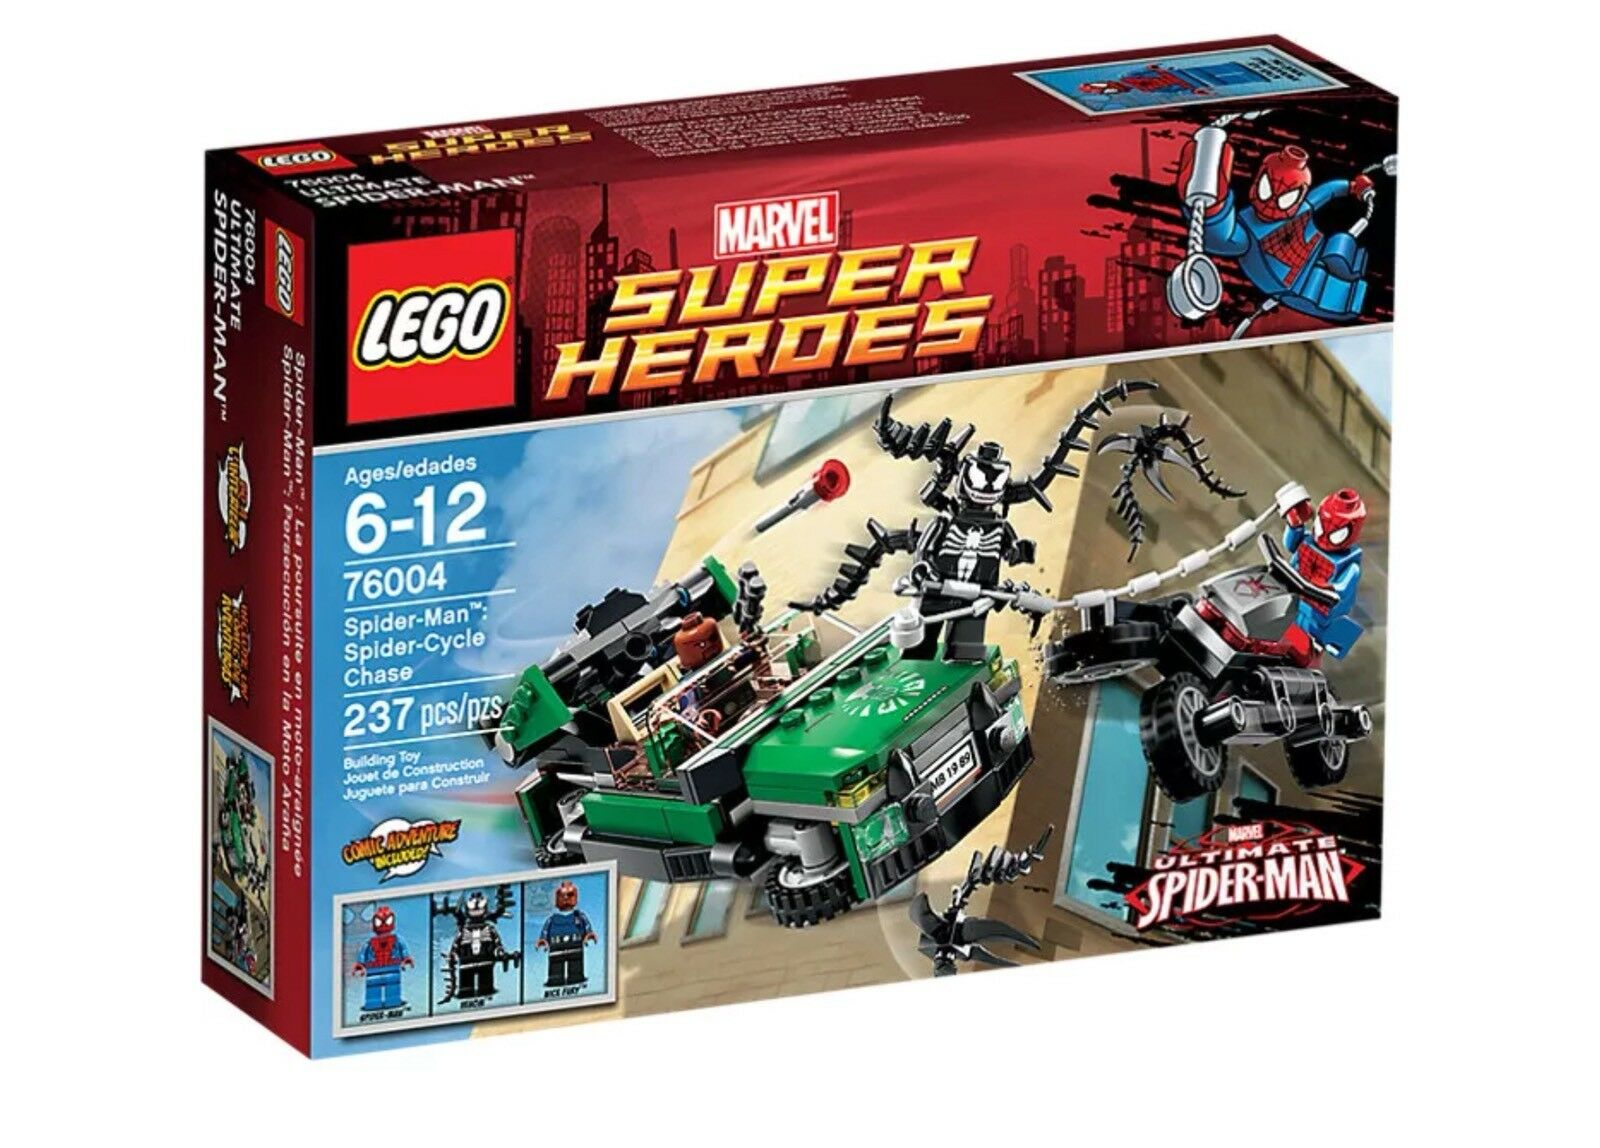 LEGO Super Heroes 76004 Spider-Man Spider-Cycle Chase New Sealed Retired